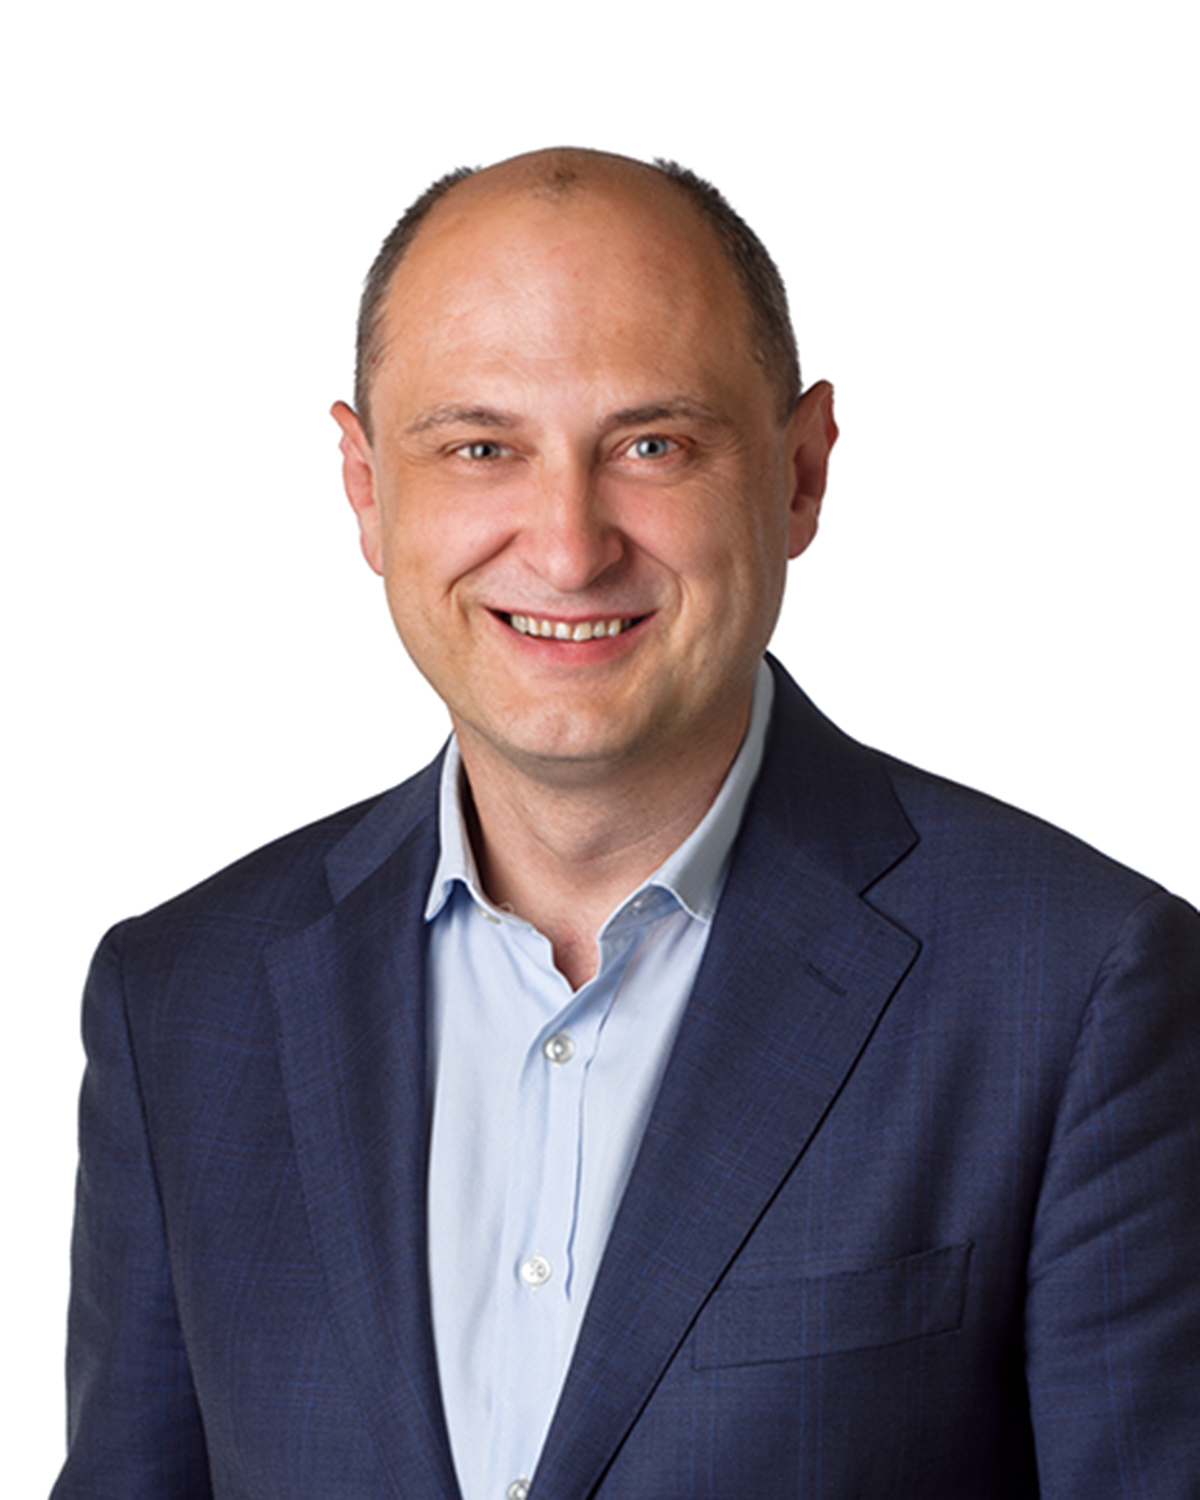 Miro Miletic, Managing Director and founder of MEMKO PTY LTD